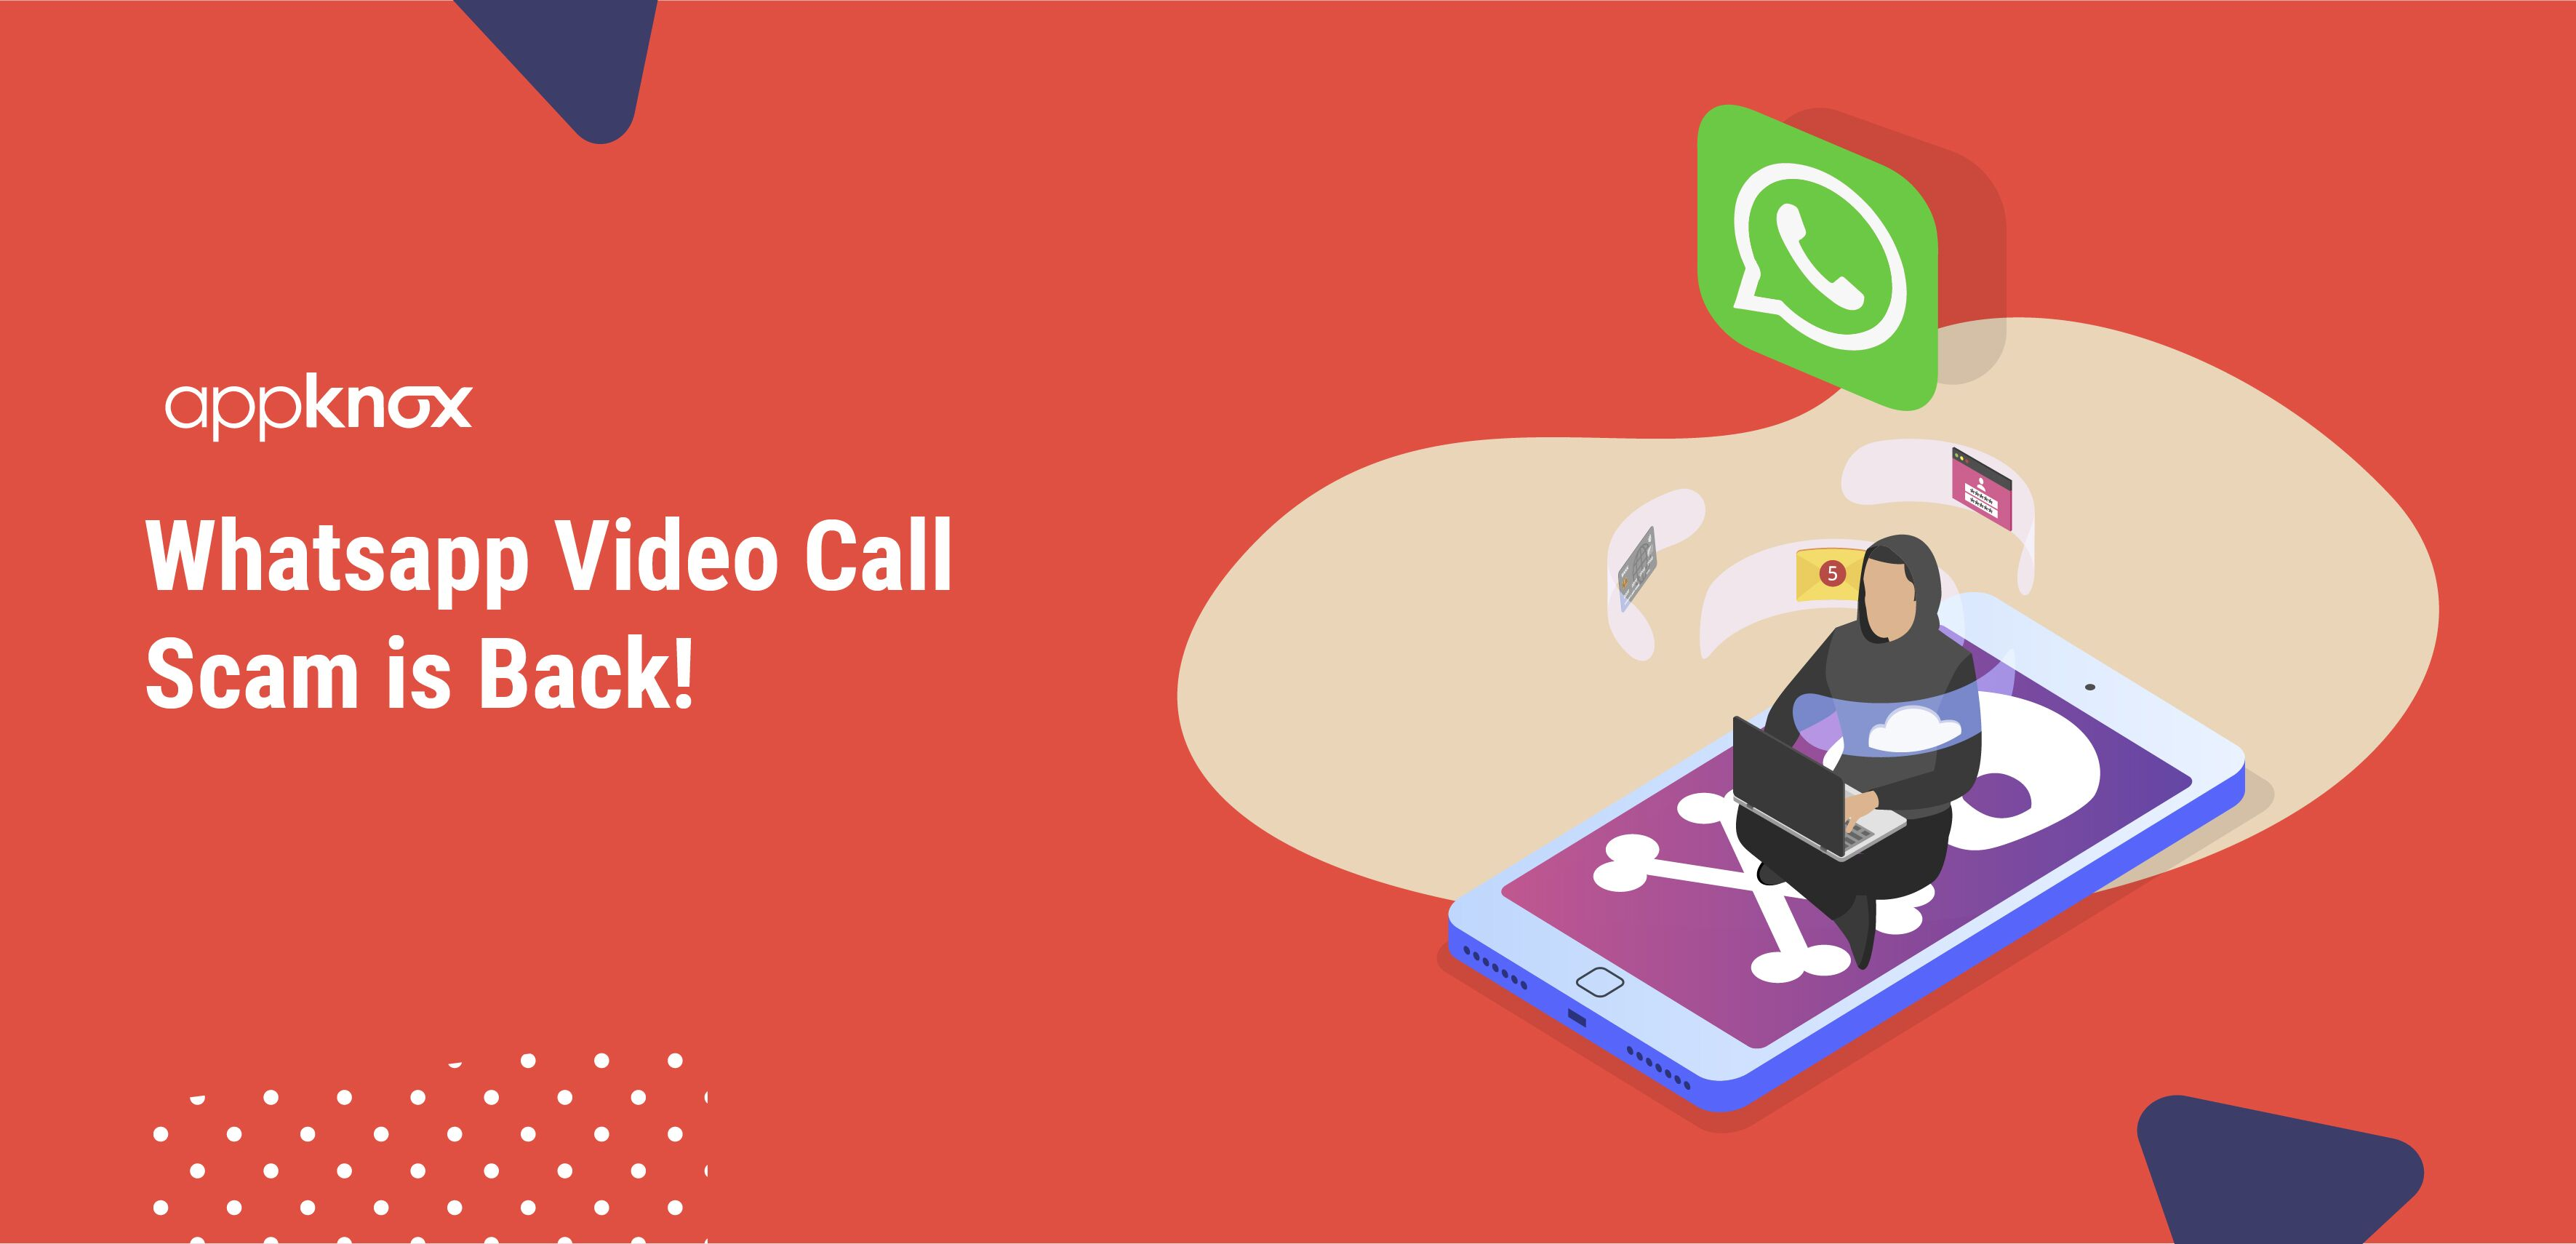 Whatsapp Video Call Scam is Back